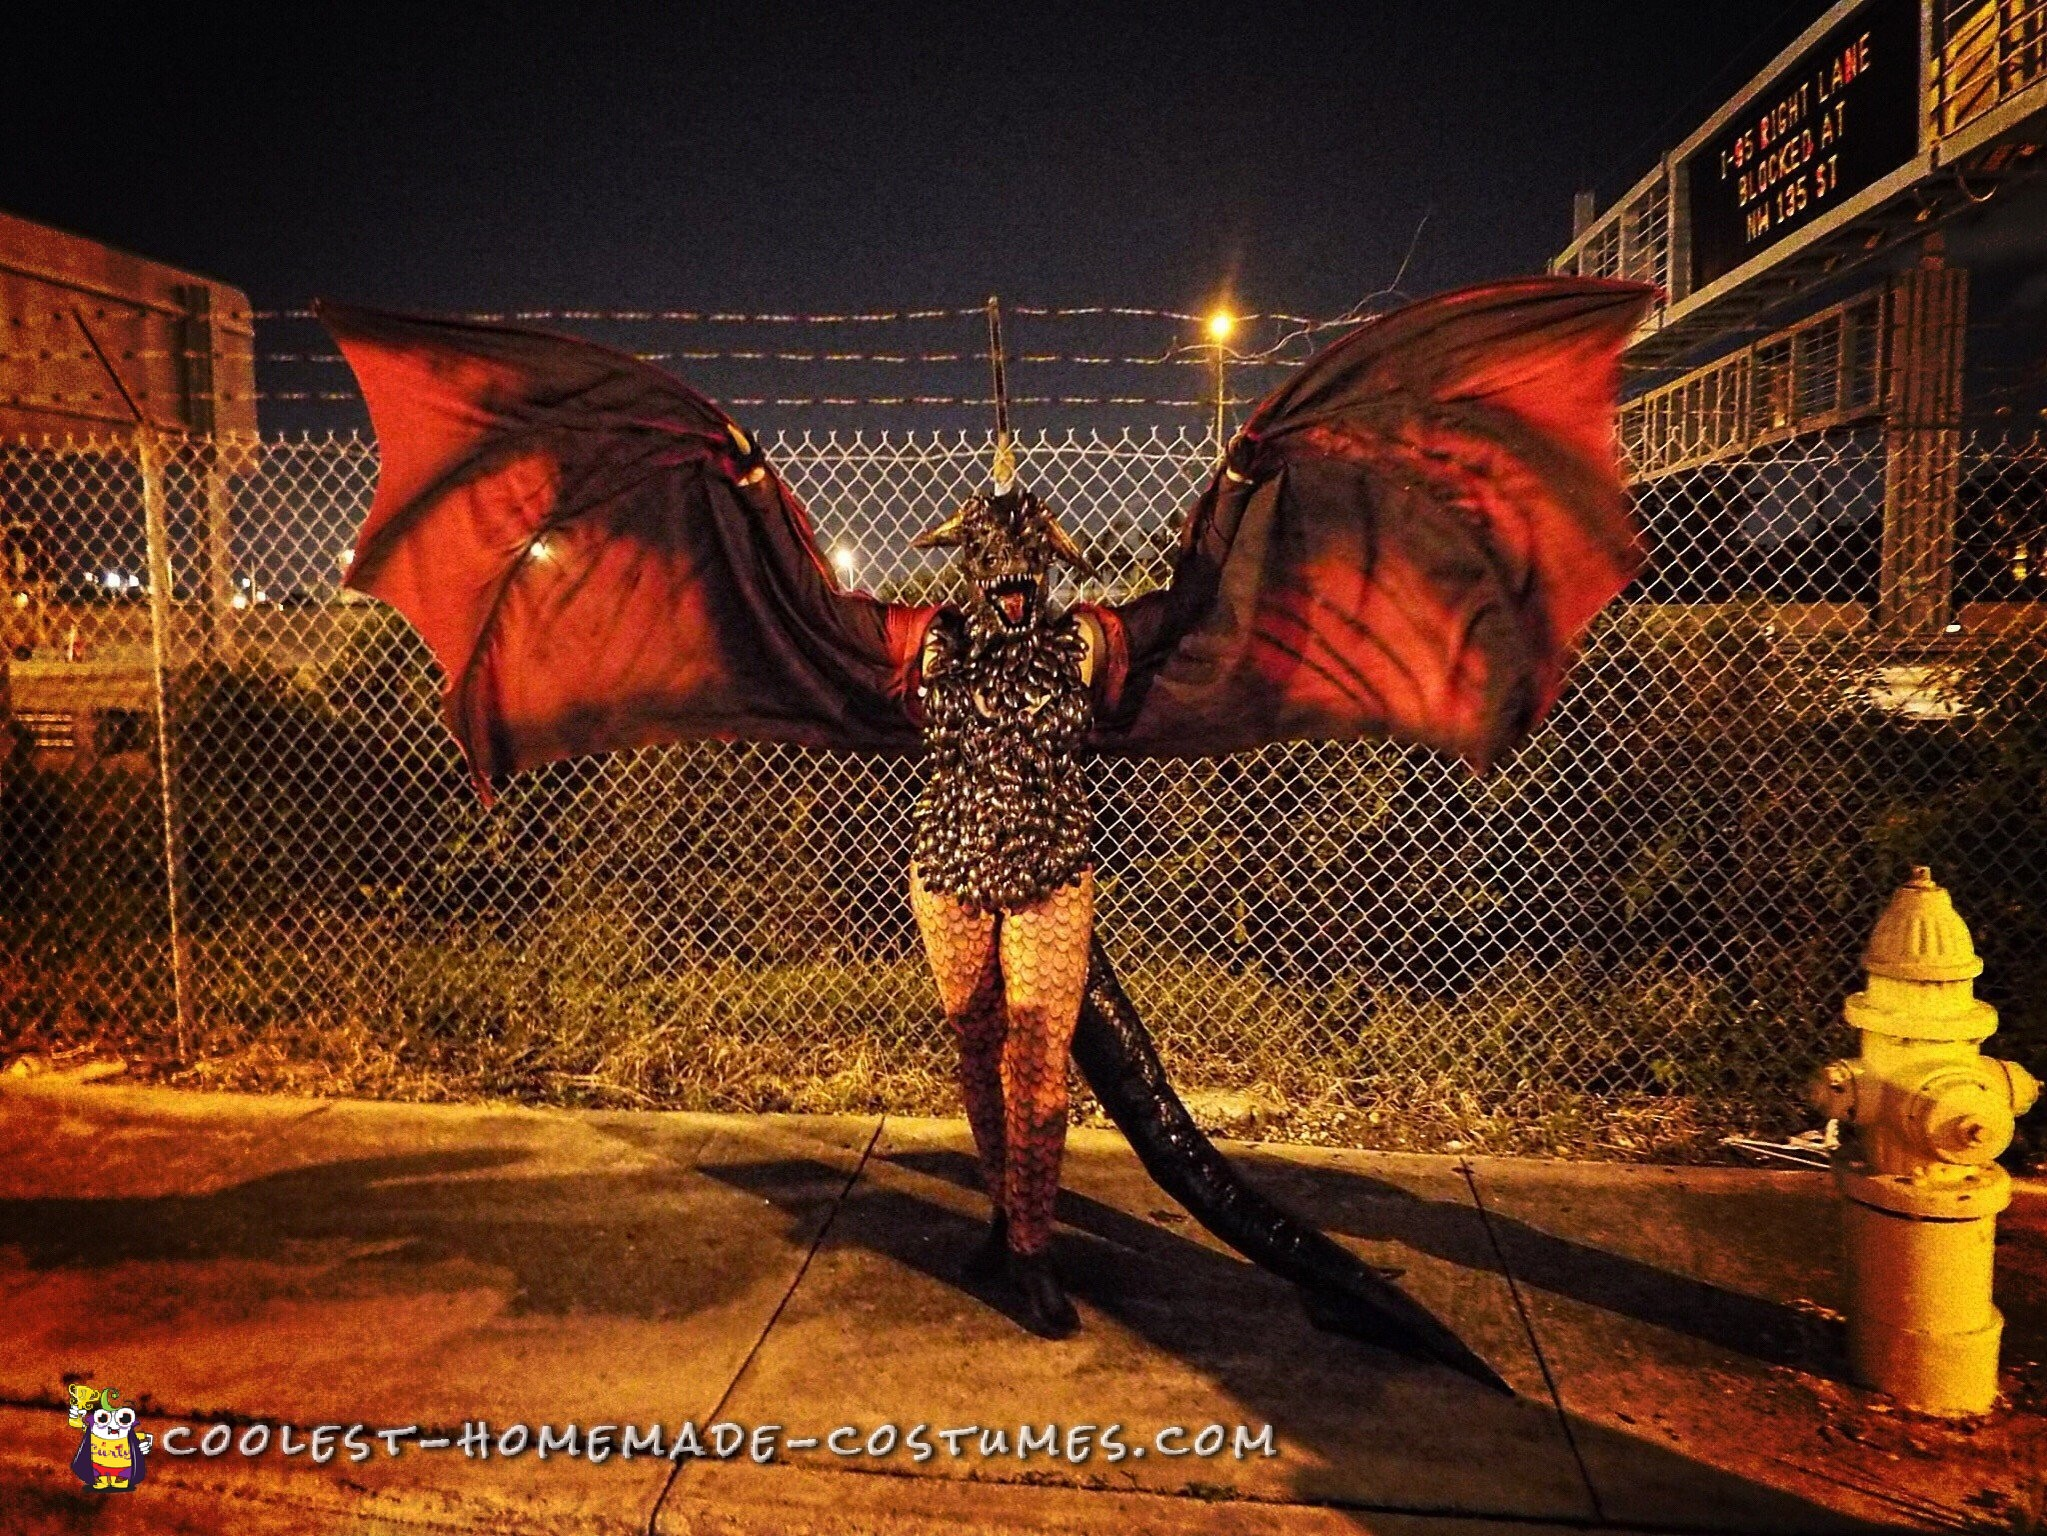 Drogon Targaryen Costume - Master of Dragons from Game of Thrones